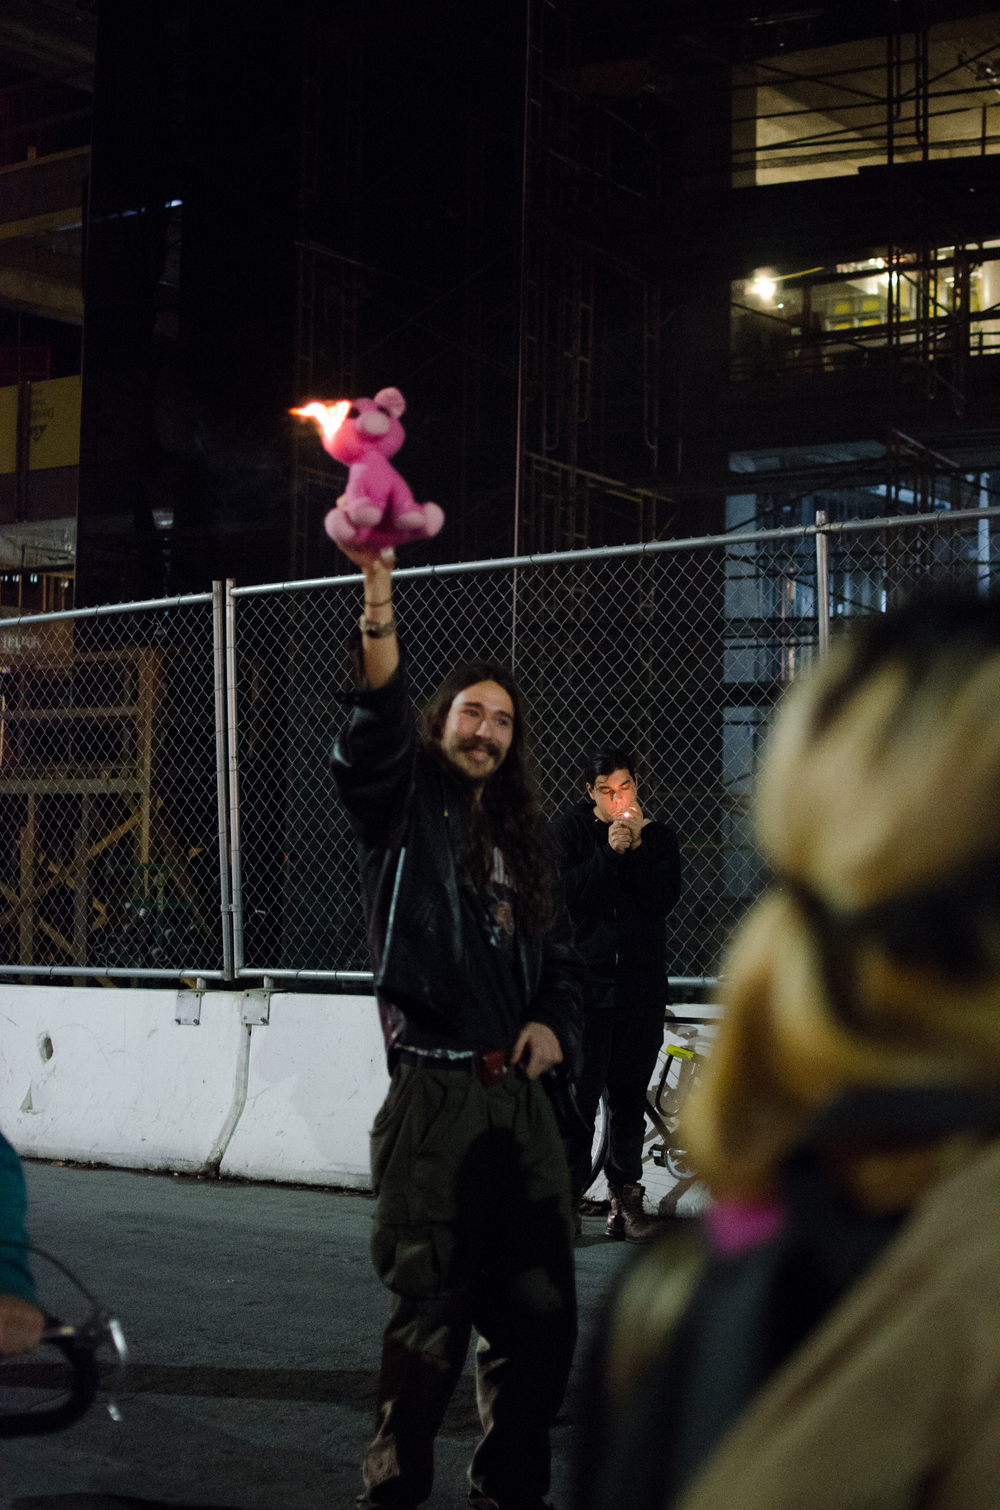 Man burns stuffed pig in front of ShareTea police line on Bancroft in Berkeley, CA December 6th, 2014 - photo by Kyle Cameron